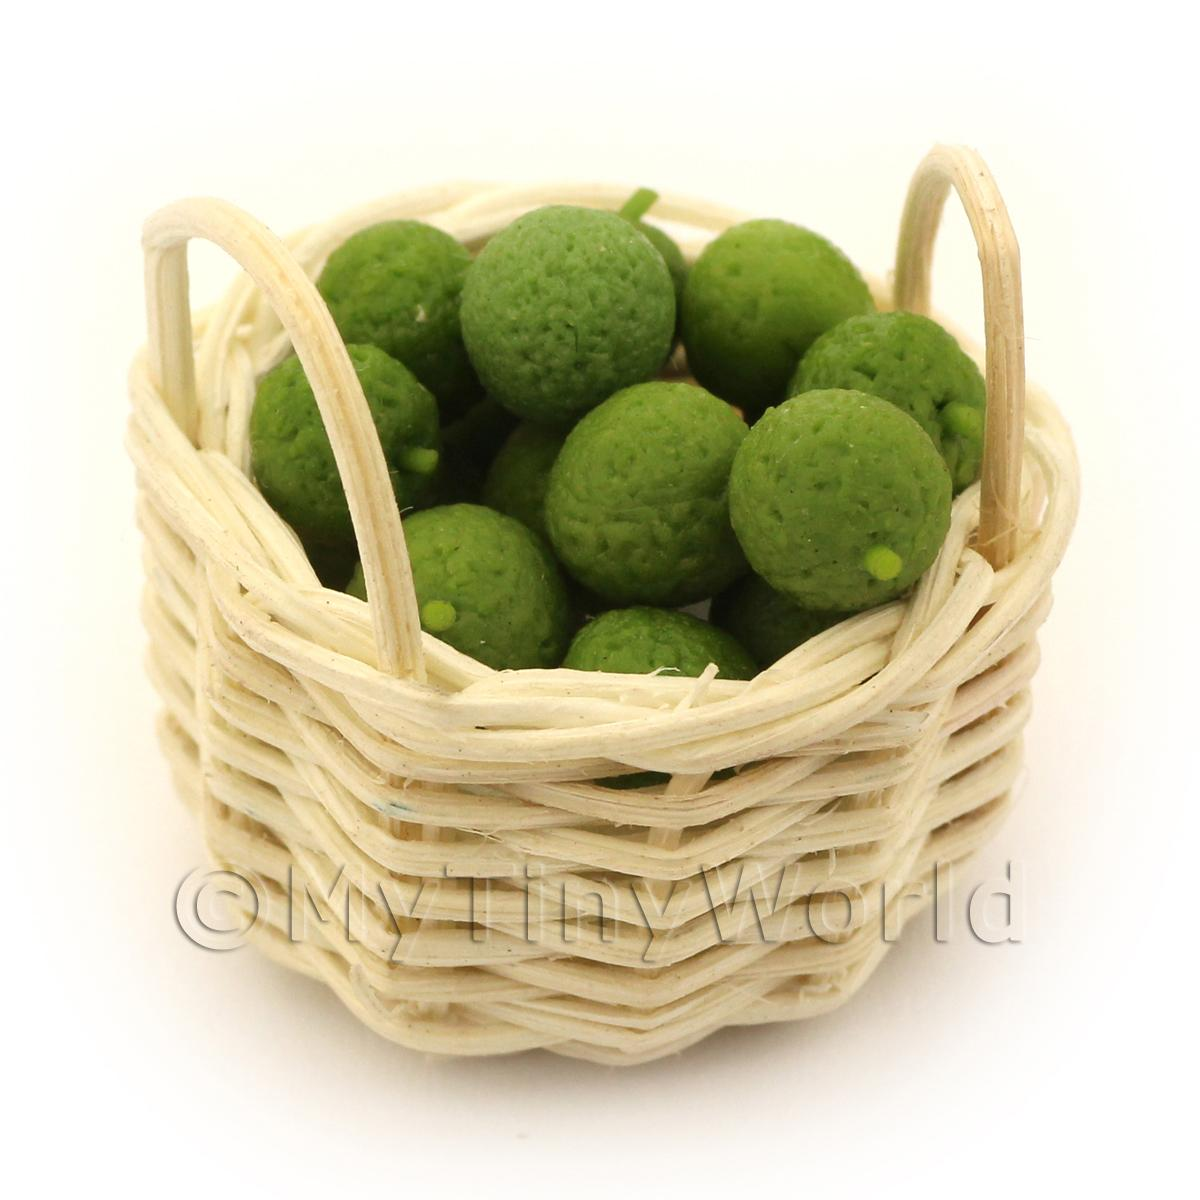 Dolls House Miniature Basket of Hand Made Limes